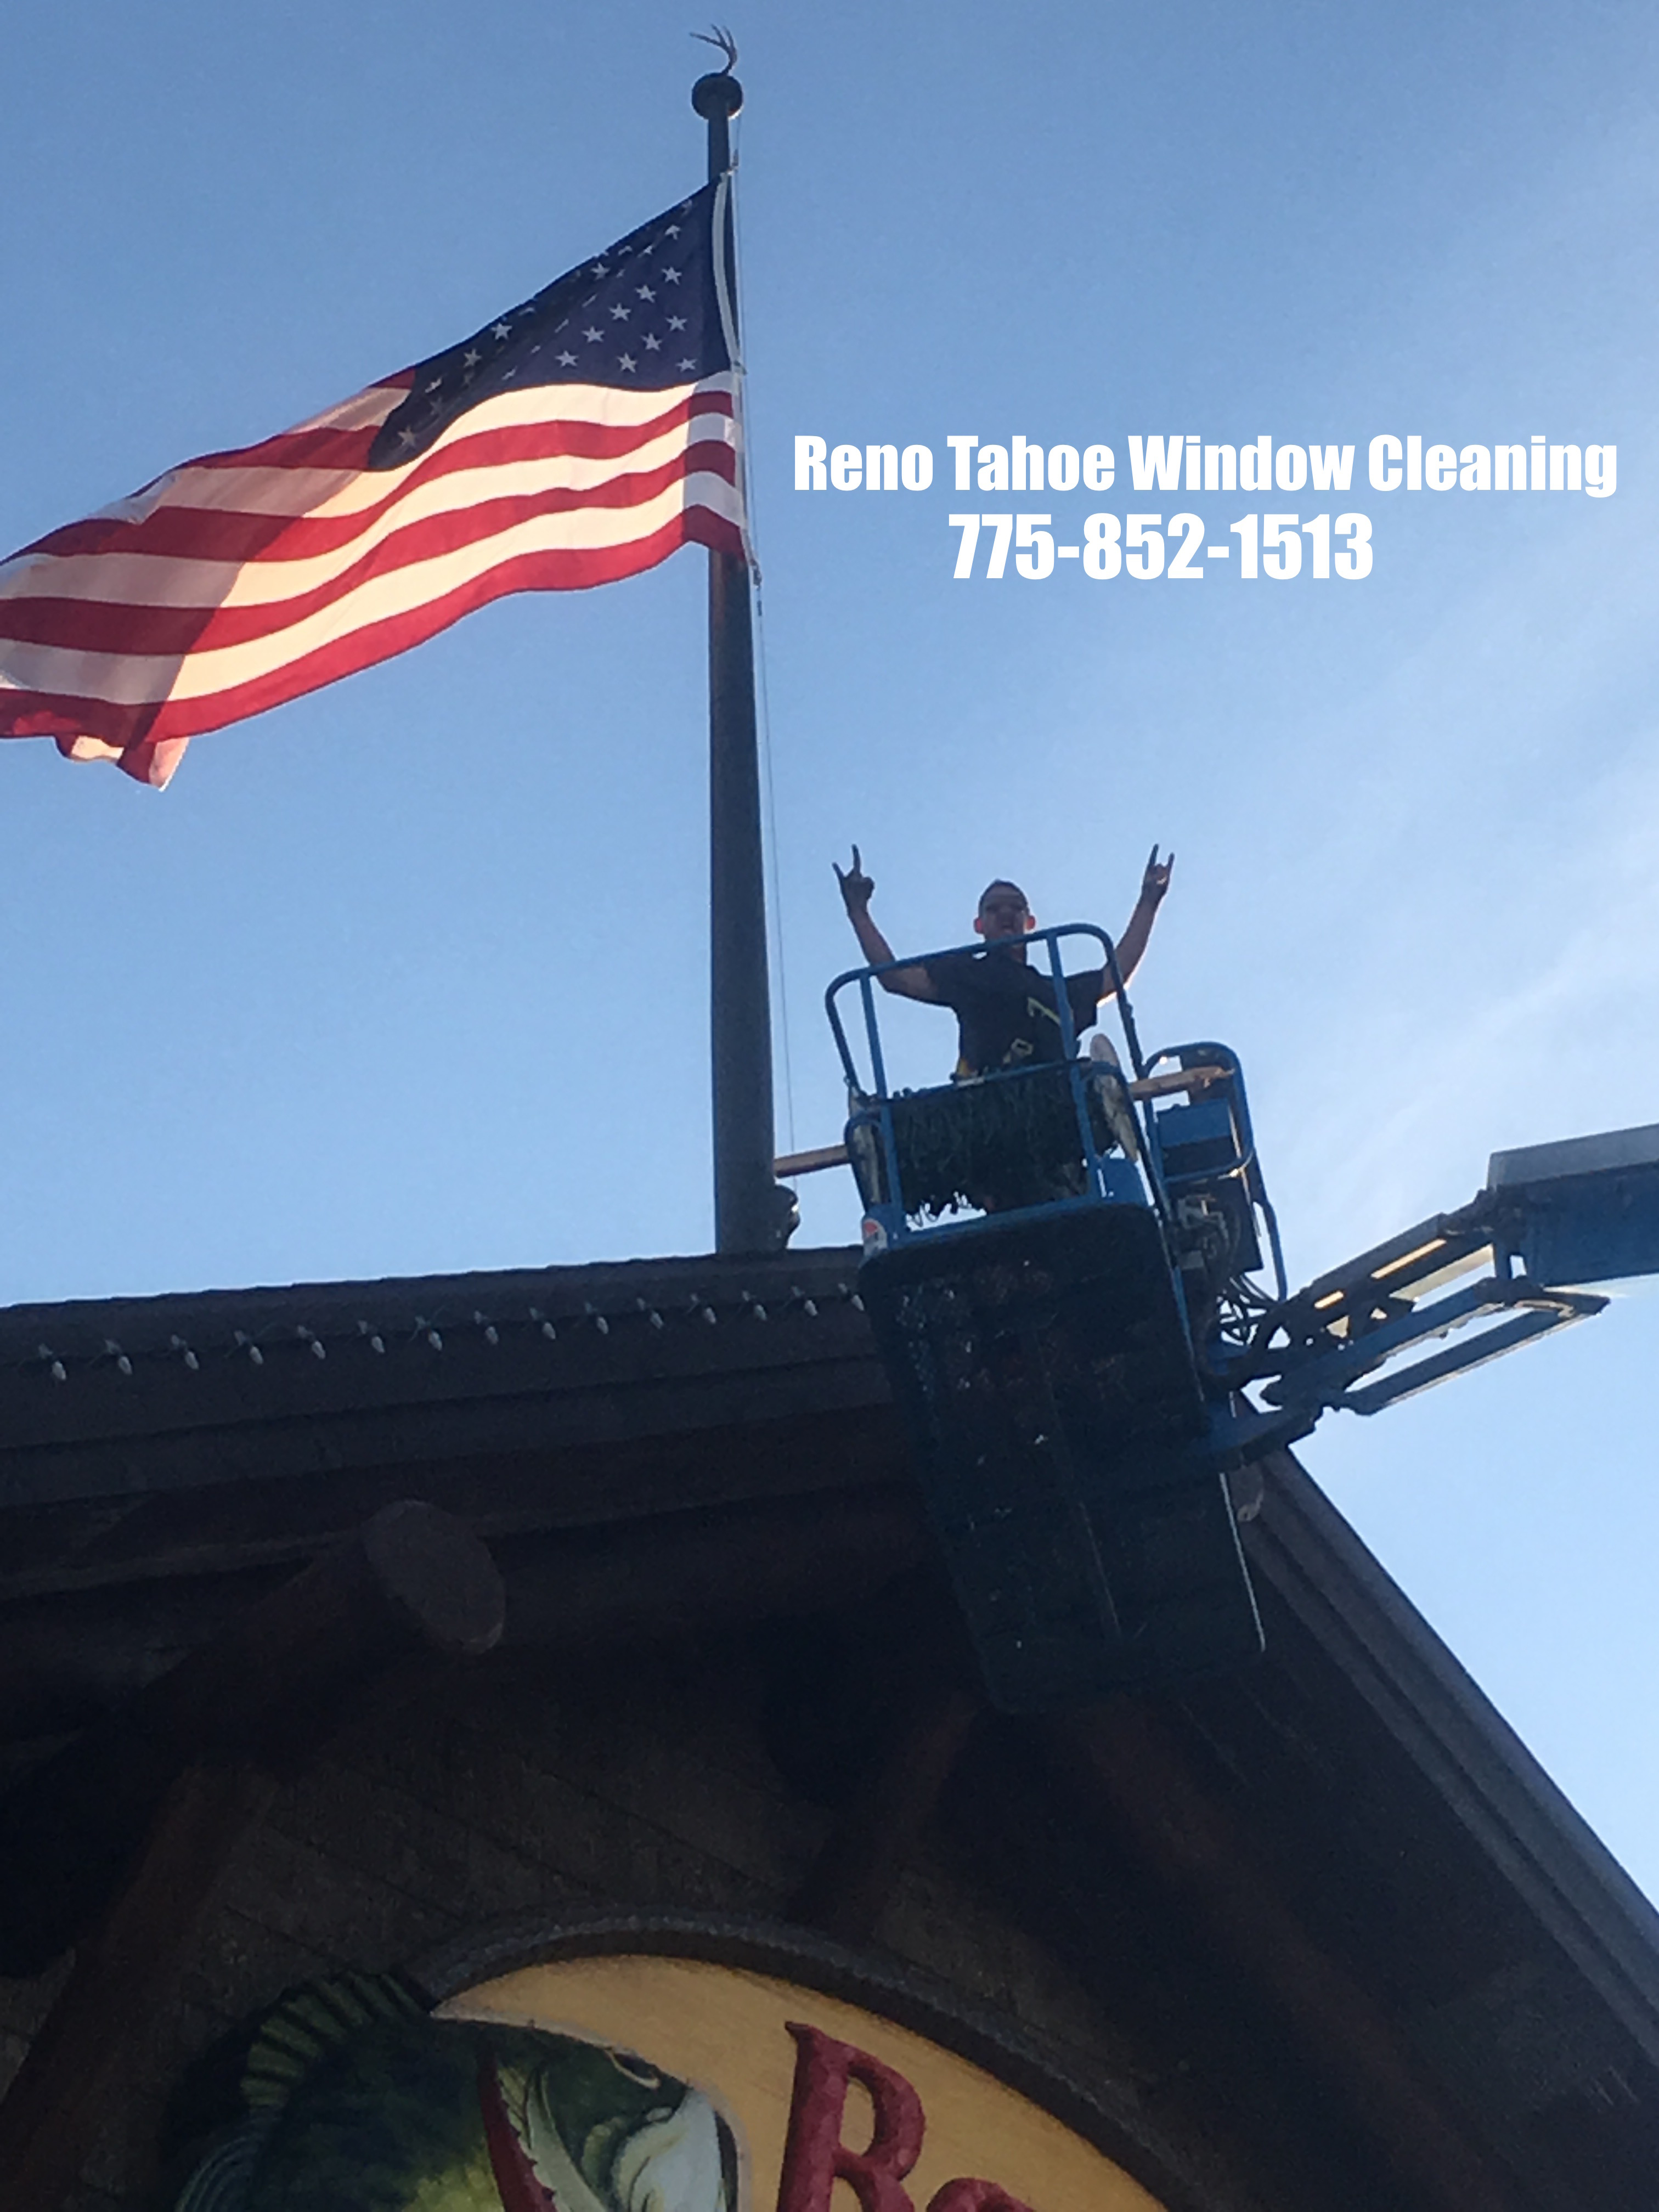 Reno Tahoe Window Cleaning - Reno, NV